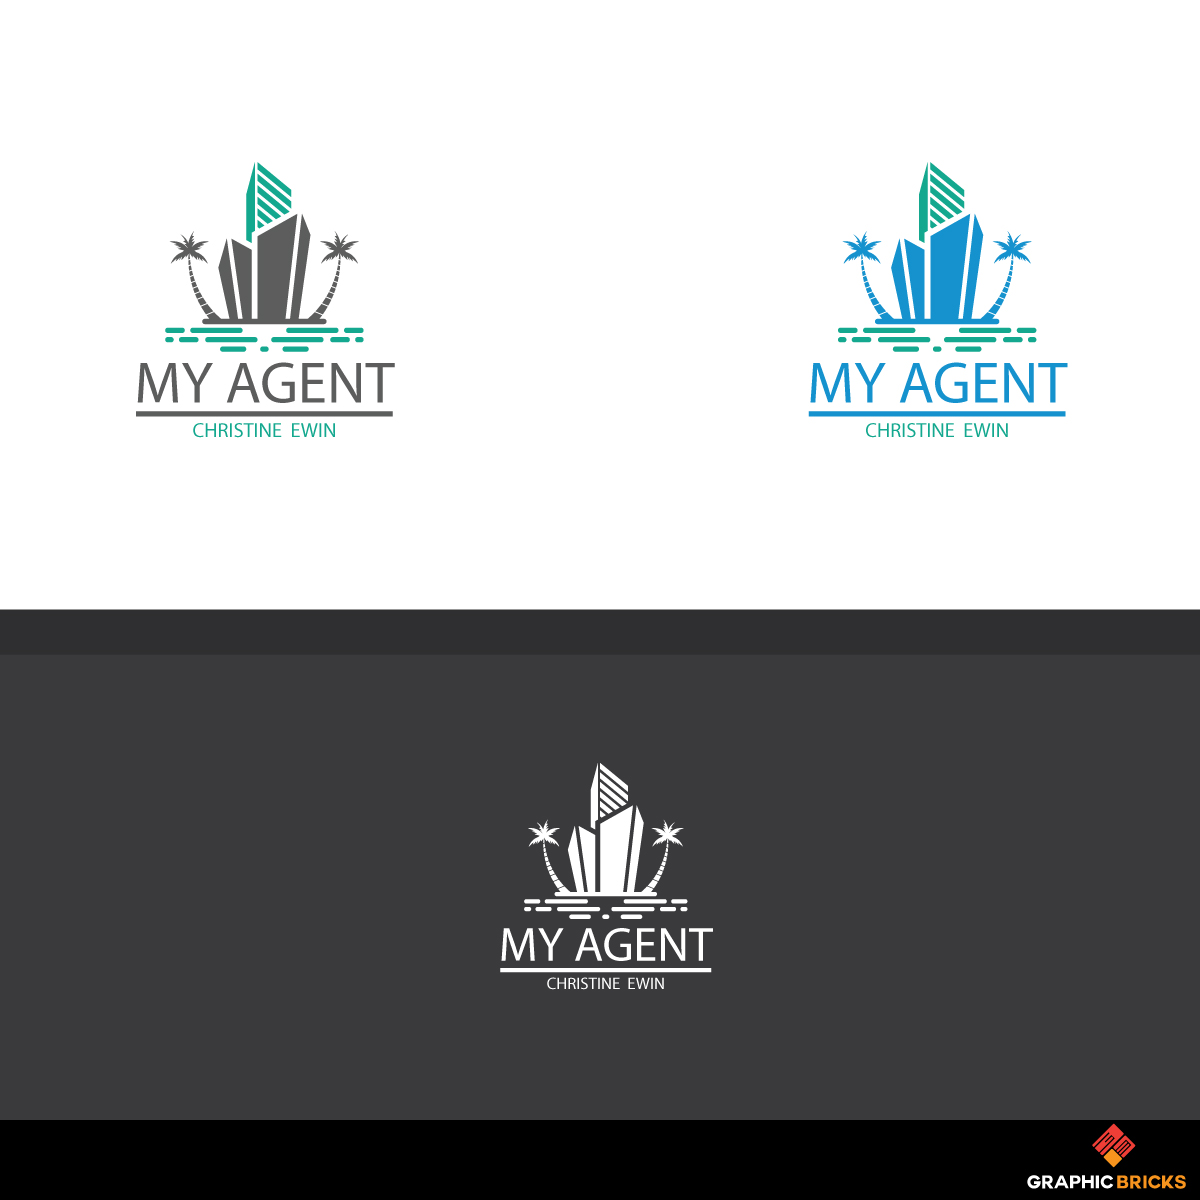 Modern, Serious, Real Estate Agent Logo Design for My Agent.